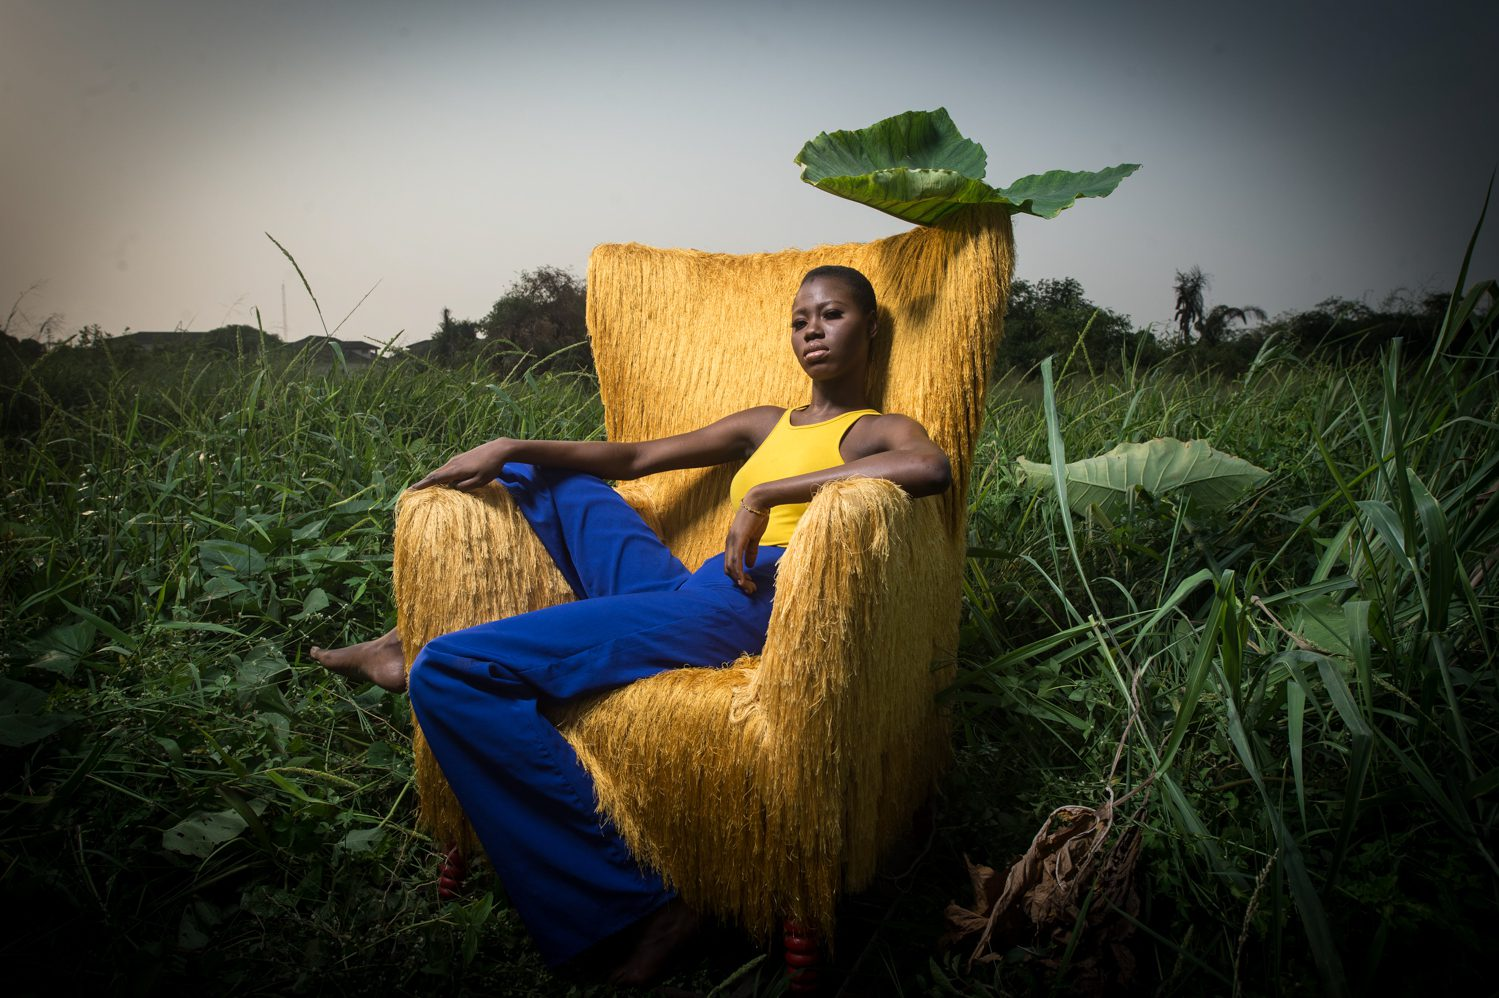 Mmanwu is an armchair made by master artisans out of Aso Oke fabric, wood and foam. It is a unique piece that can be ordered from contemporary African craft specialists Aga Concept in Lagos.